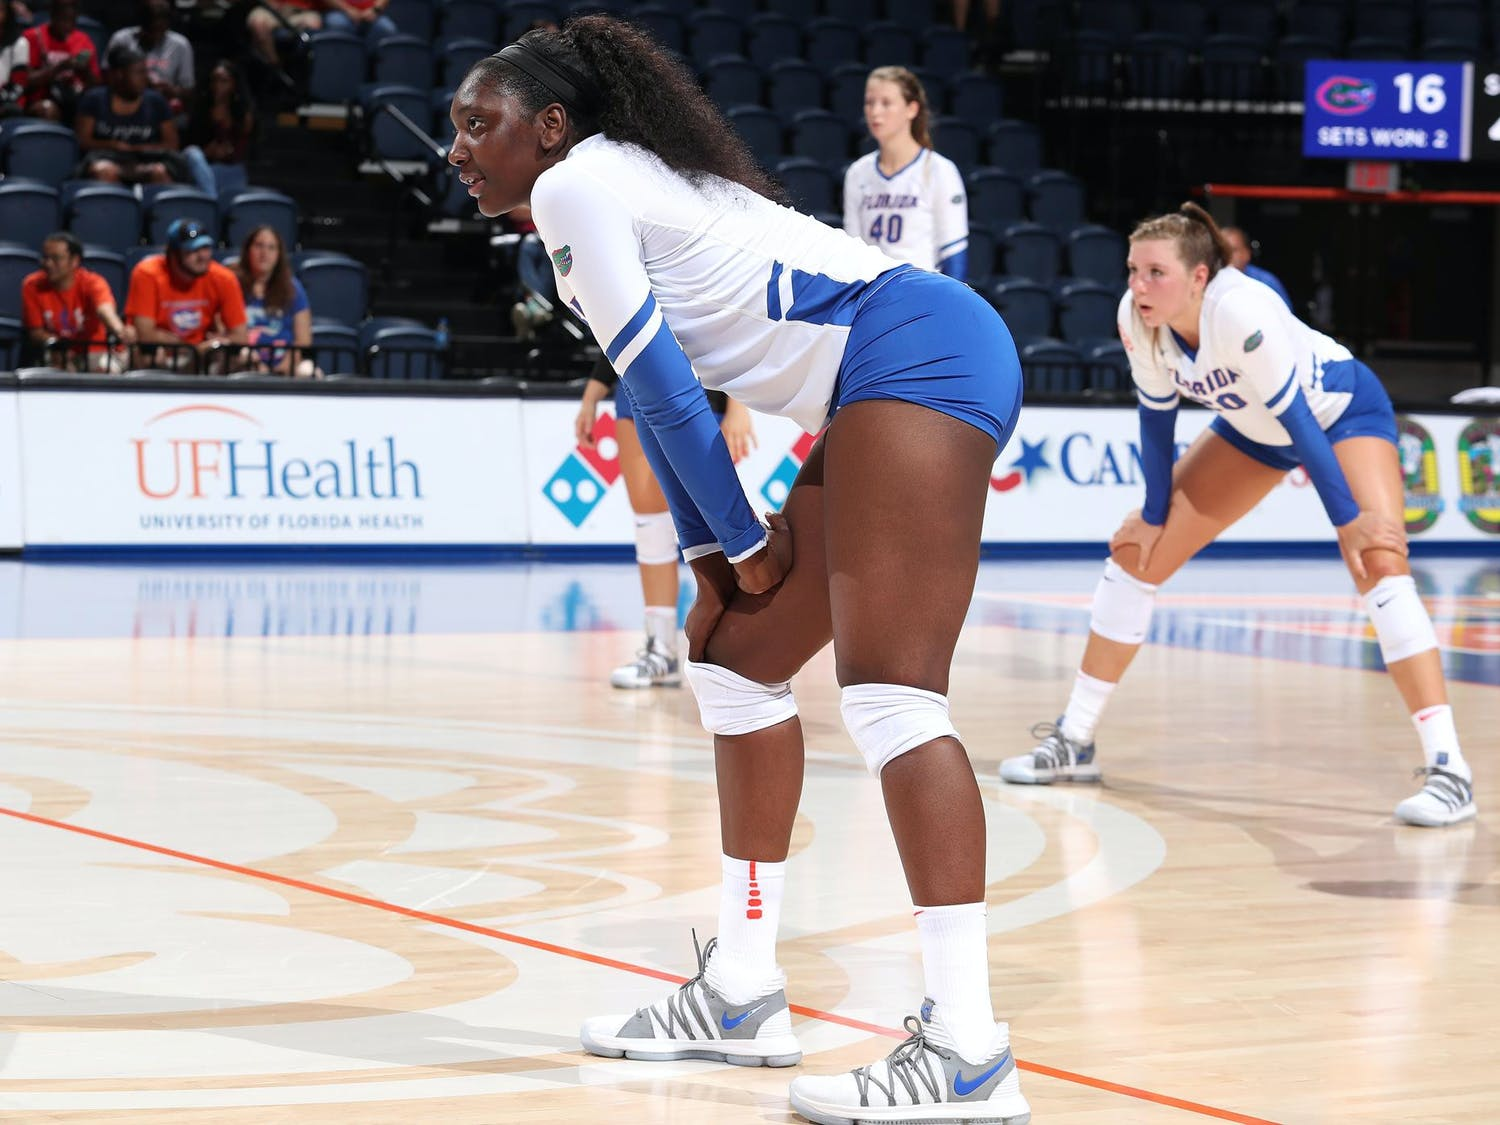 Darrielle King, an educational sciences redshirt senior, shares her journey from growing up in her Dallas suburb to playing volleyball as a middle blocker at UF. Photo by Allison Curry